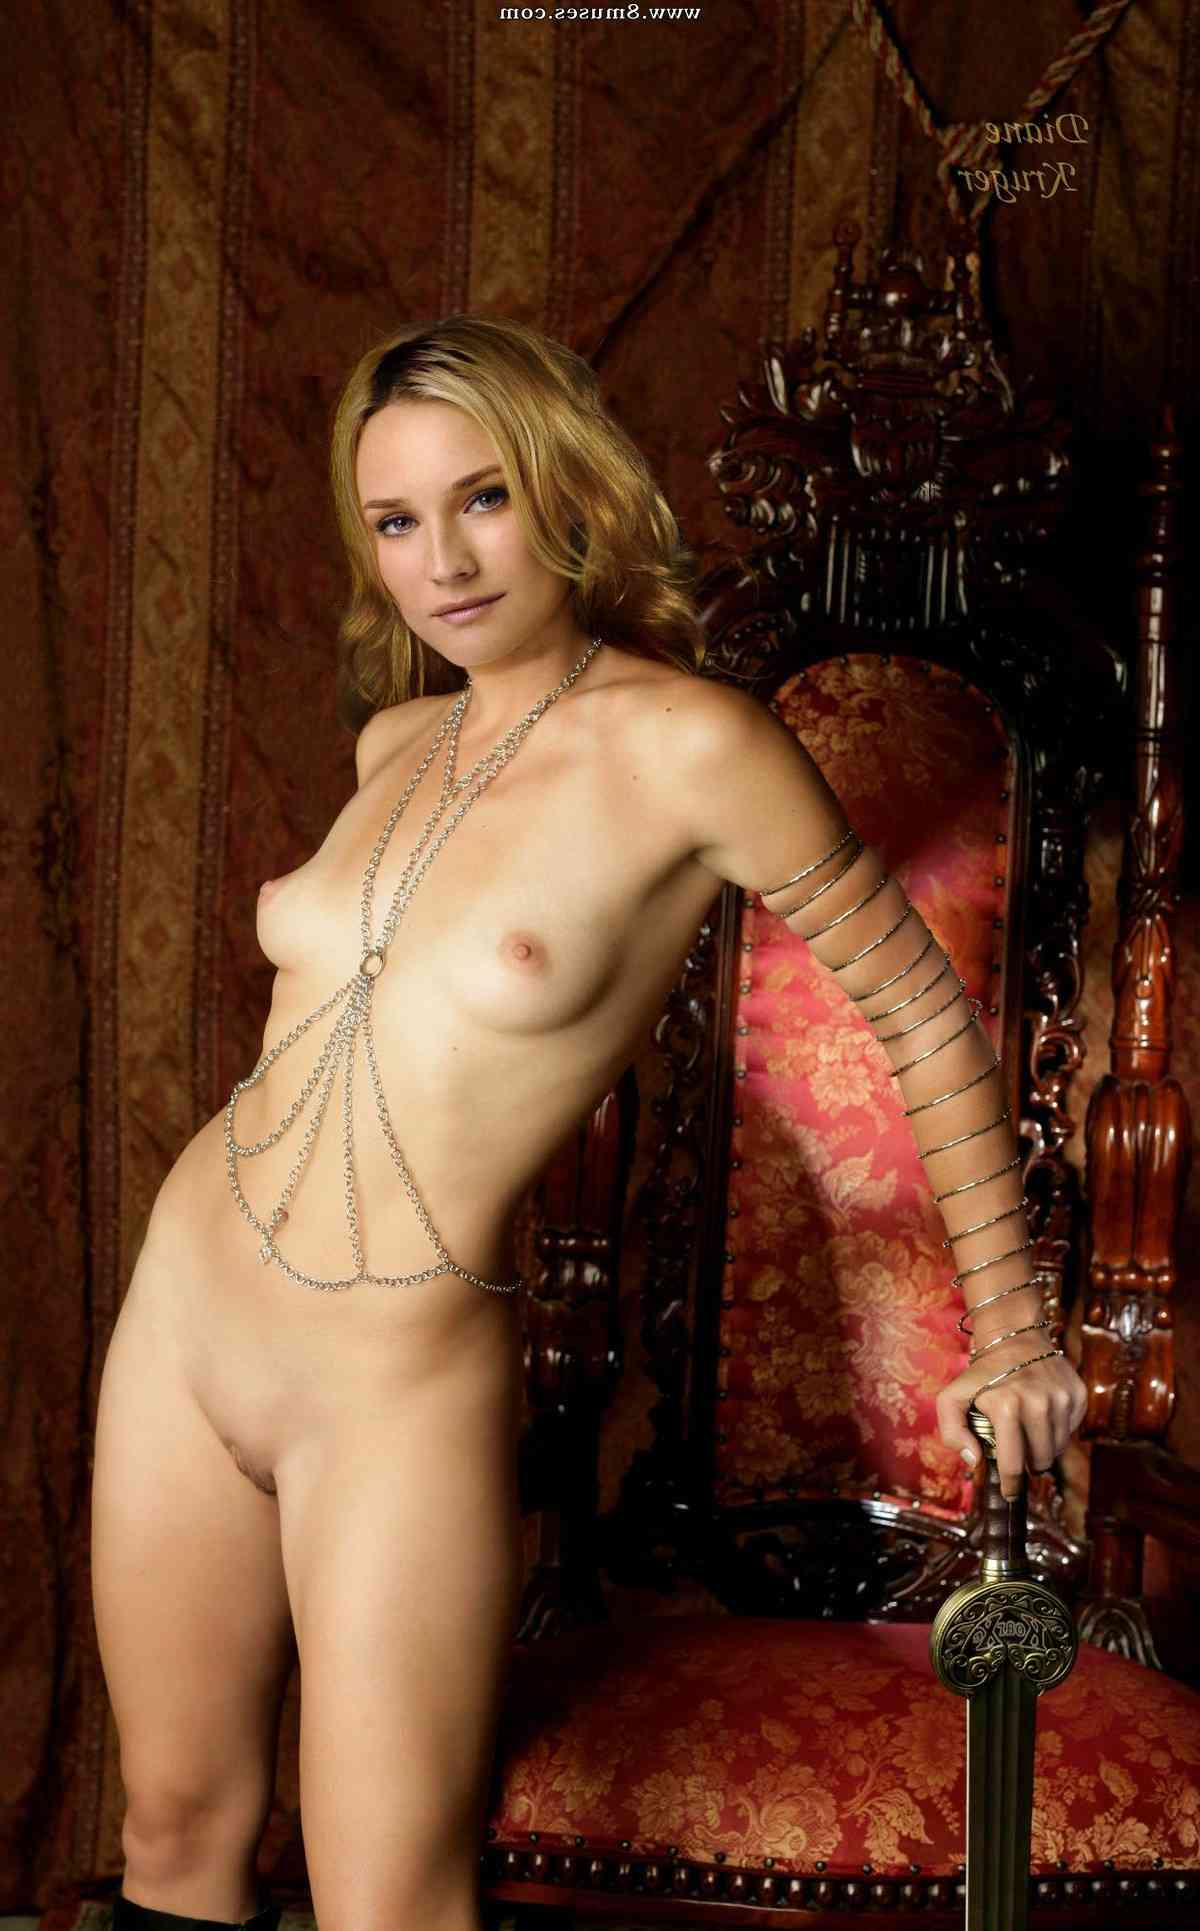 Fake-Celebrities-Sex-Pictures/Diane-Kruger Diane_Kruger__8muses_-_Sex_and_Porn_Comics_6.jpg